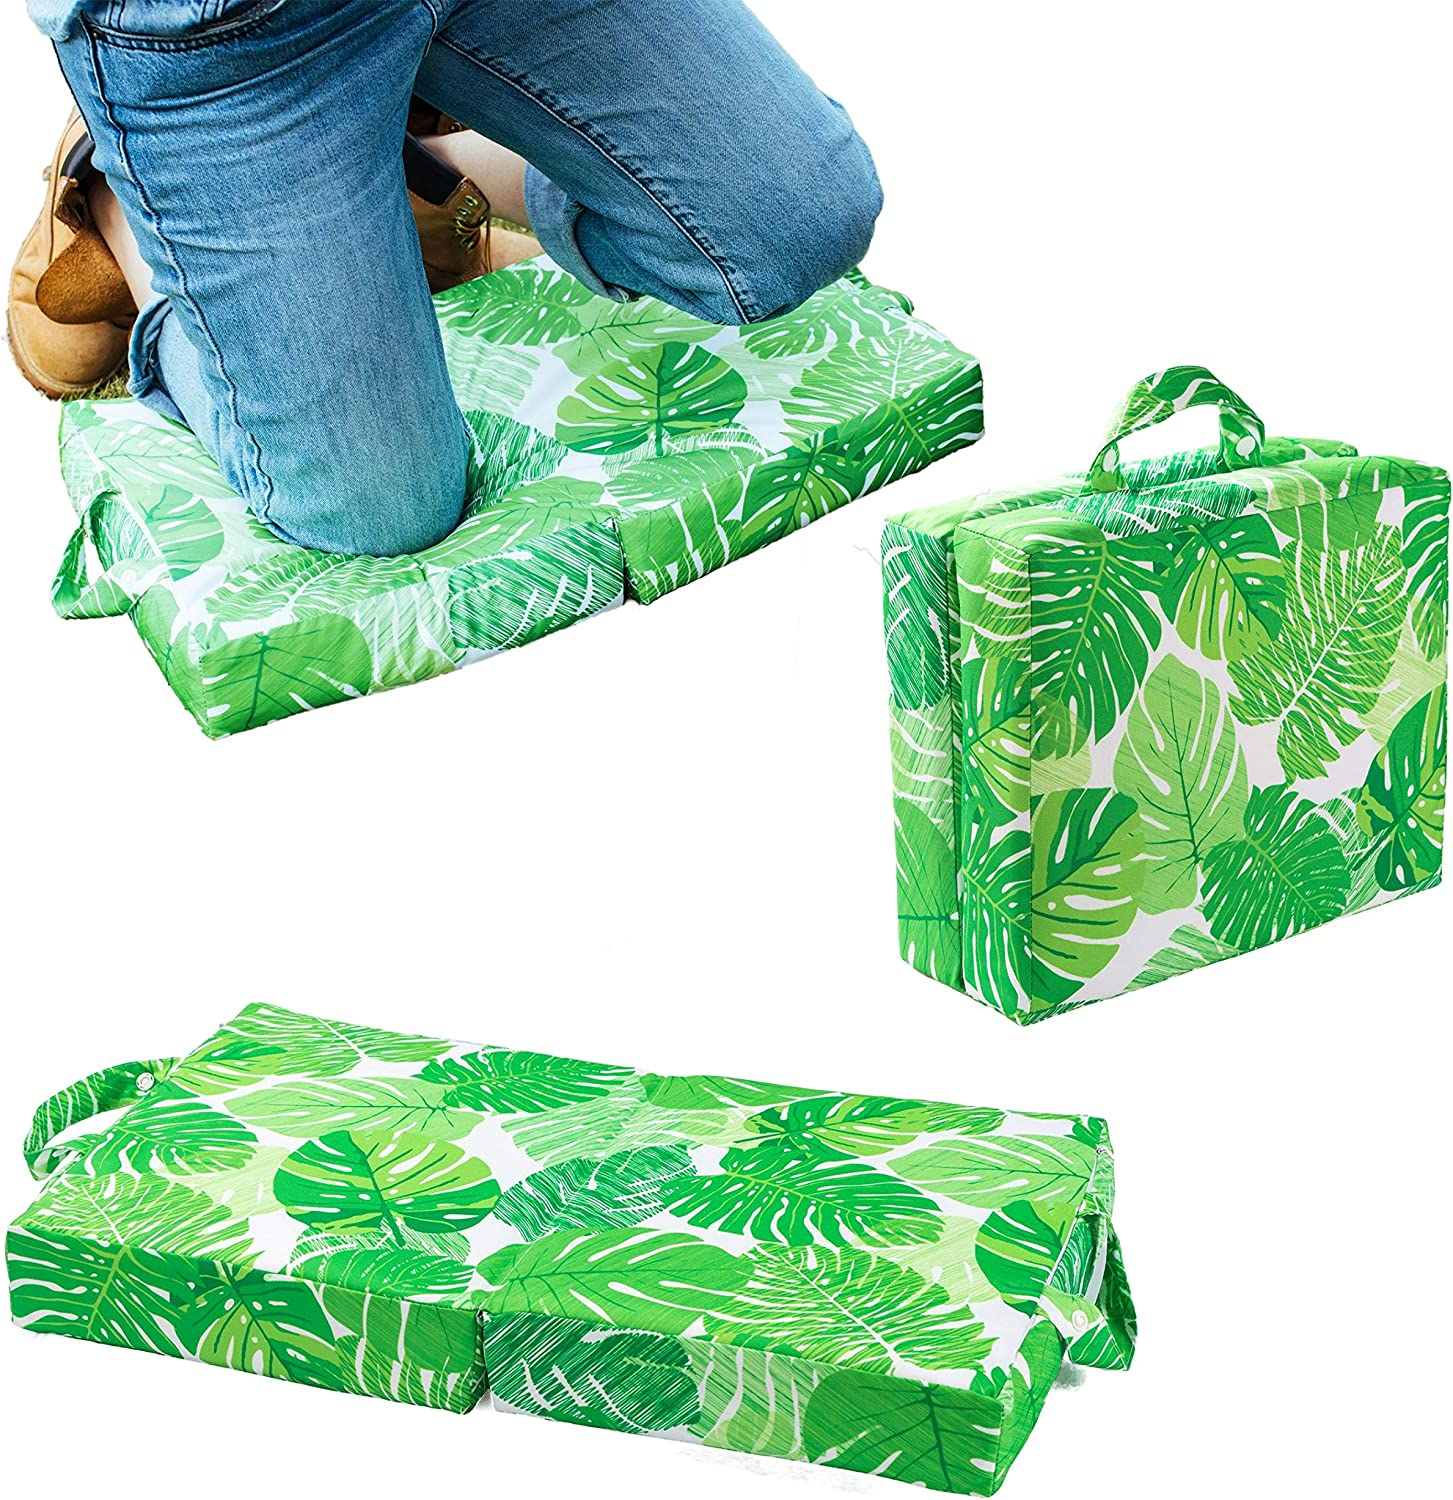 Raise Your Game Garden Kneeling Pad, Knee Protector Cushion Pillow for Garden Work, Large Thick Kneeler Foam Support for Gardening, Waterproof Foldable Mat, Indoor and Outdoor Chores (Green)